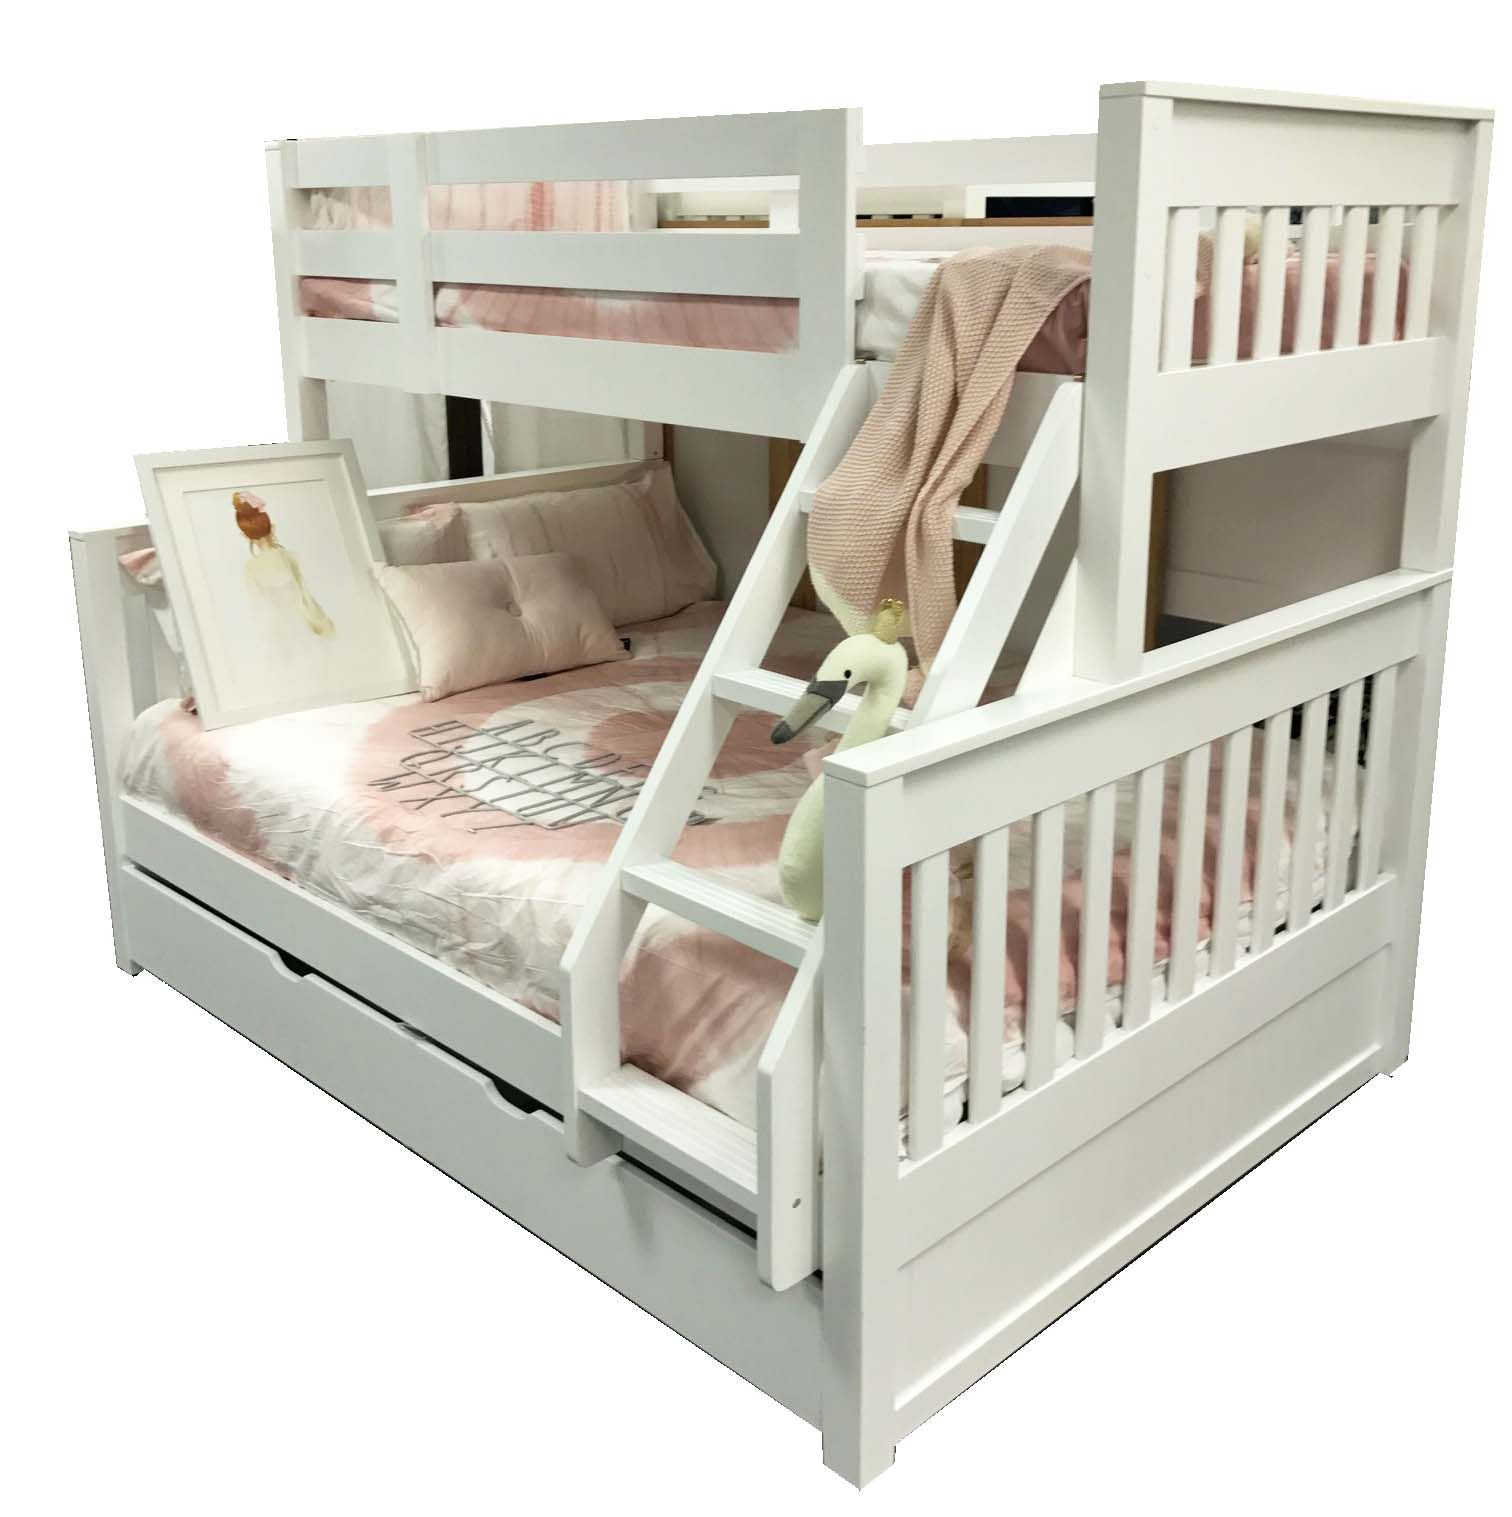 Best Riley Single Over Double Bunk Inc Trundle – In Stock 400 x 300